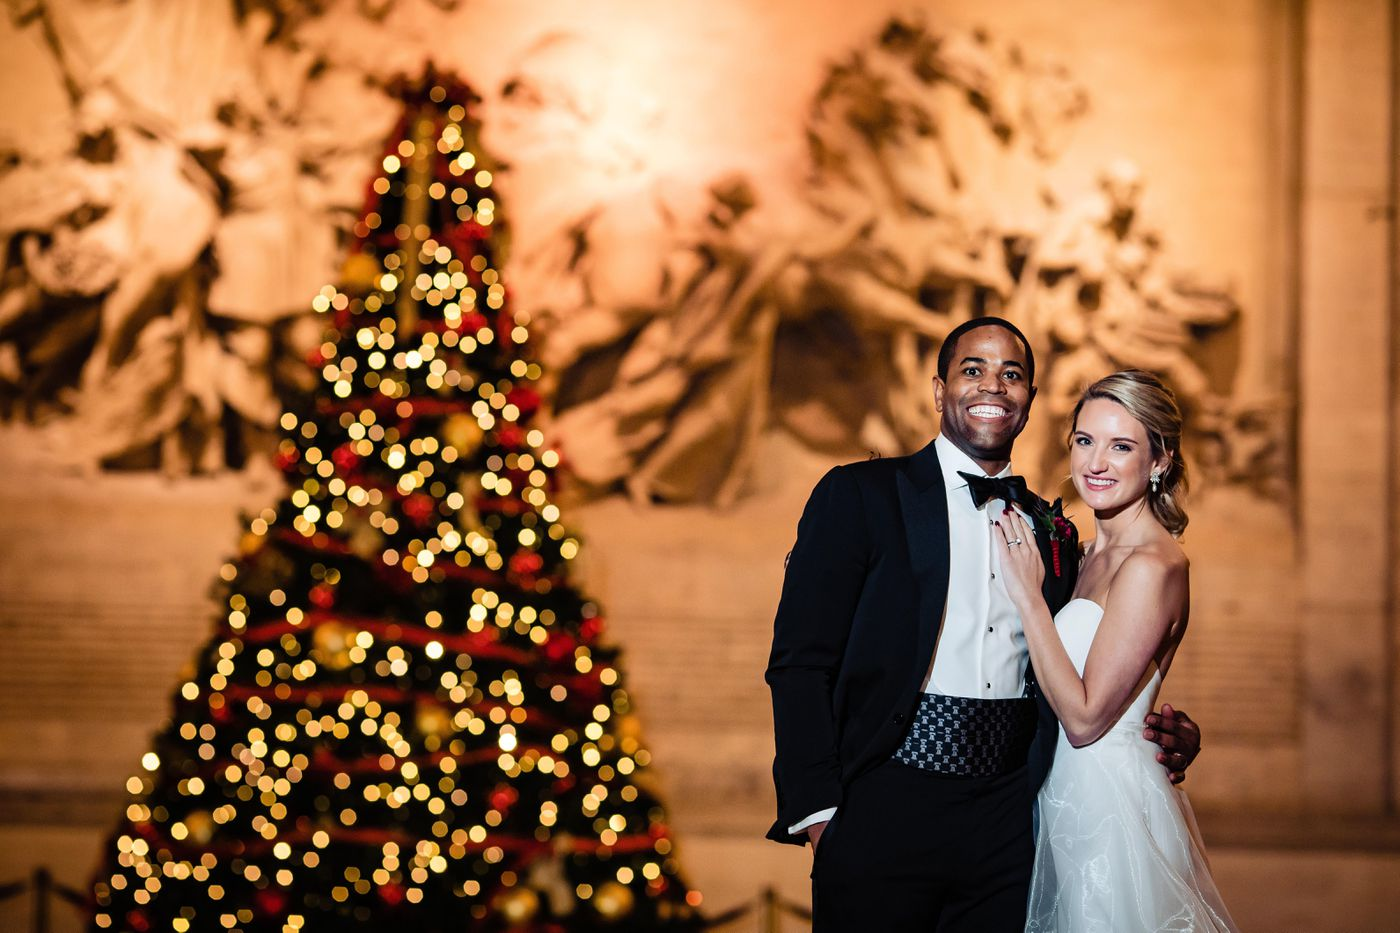 When Does Bjs Get Their Christmas Decorations 2020 For Christina Zipf and BJ Glenn, being together is joyful